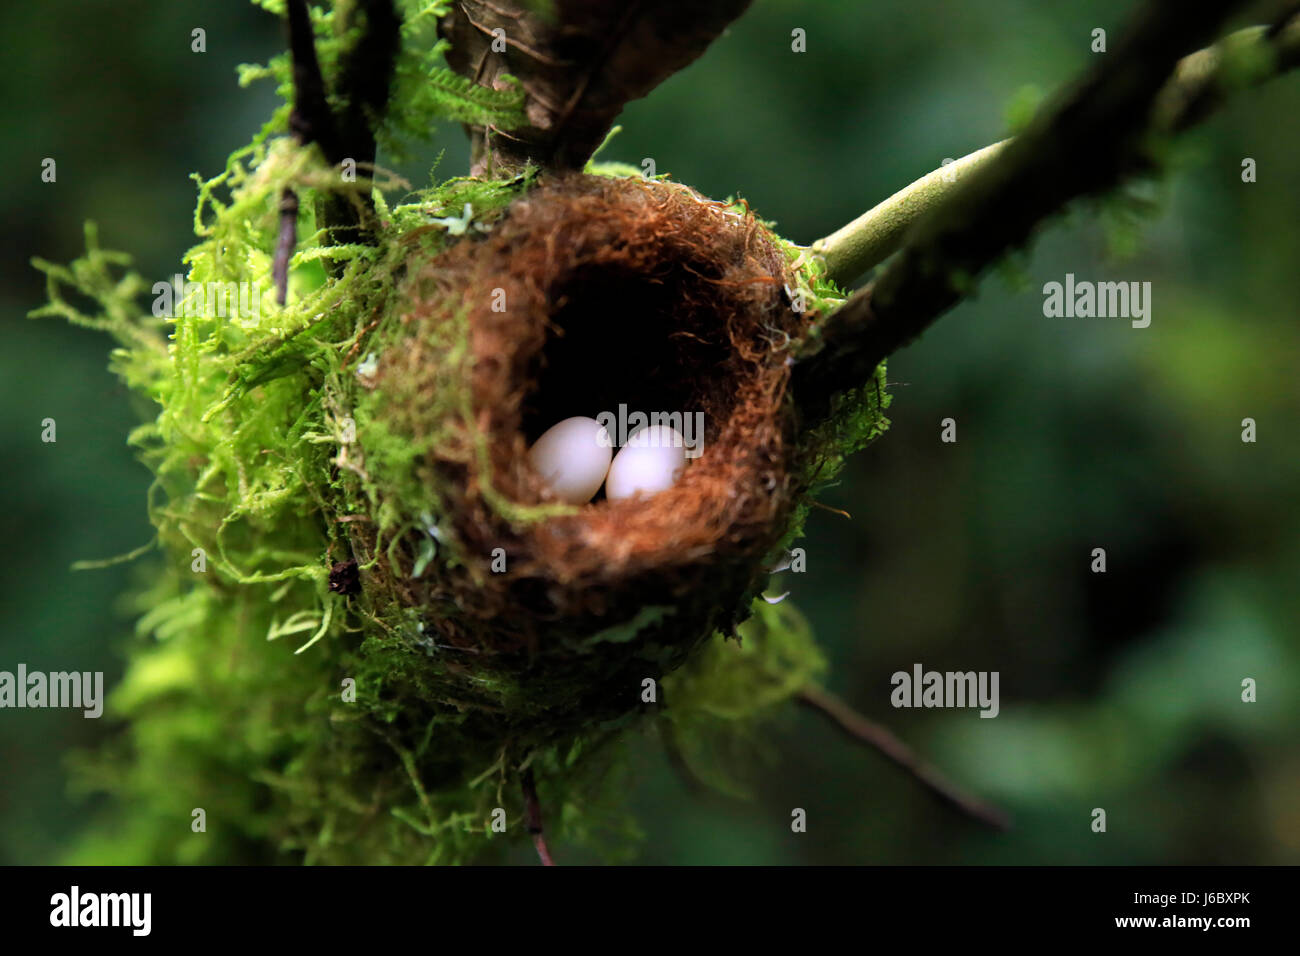 Hummingbird Nest with Eggs, Each about the Size of a Jellybean. Boquete, Panama - Stock Image